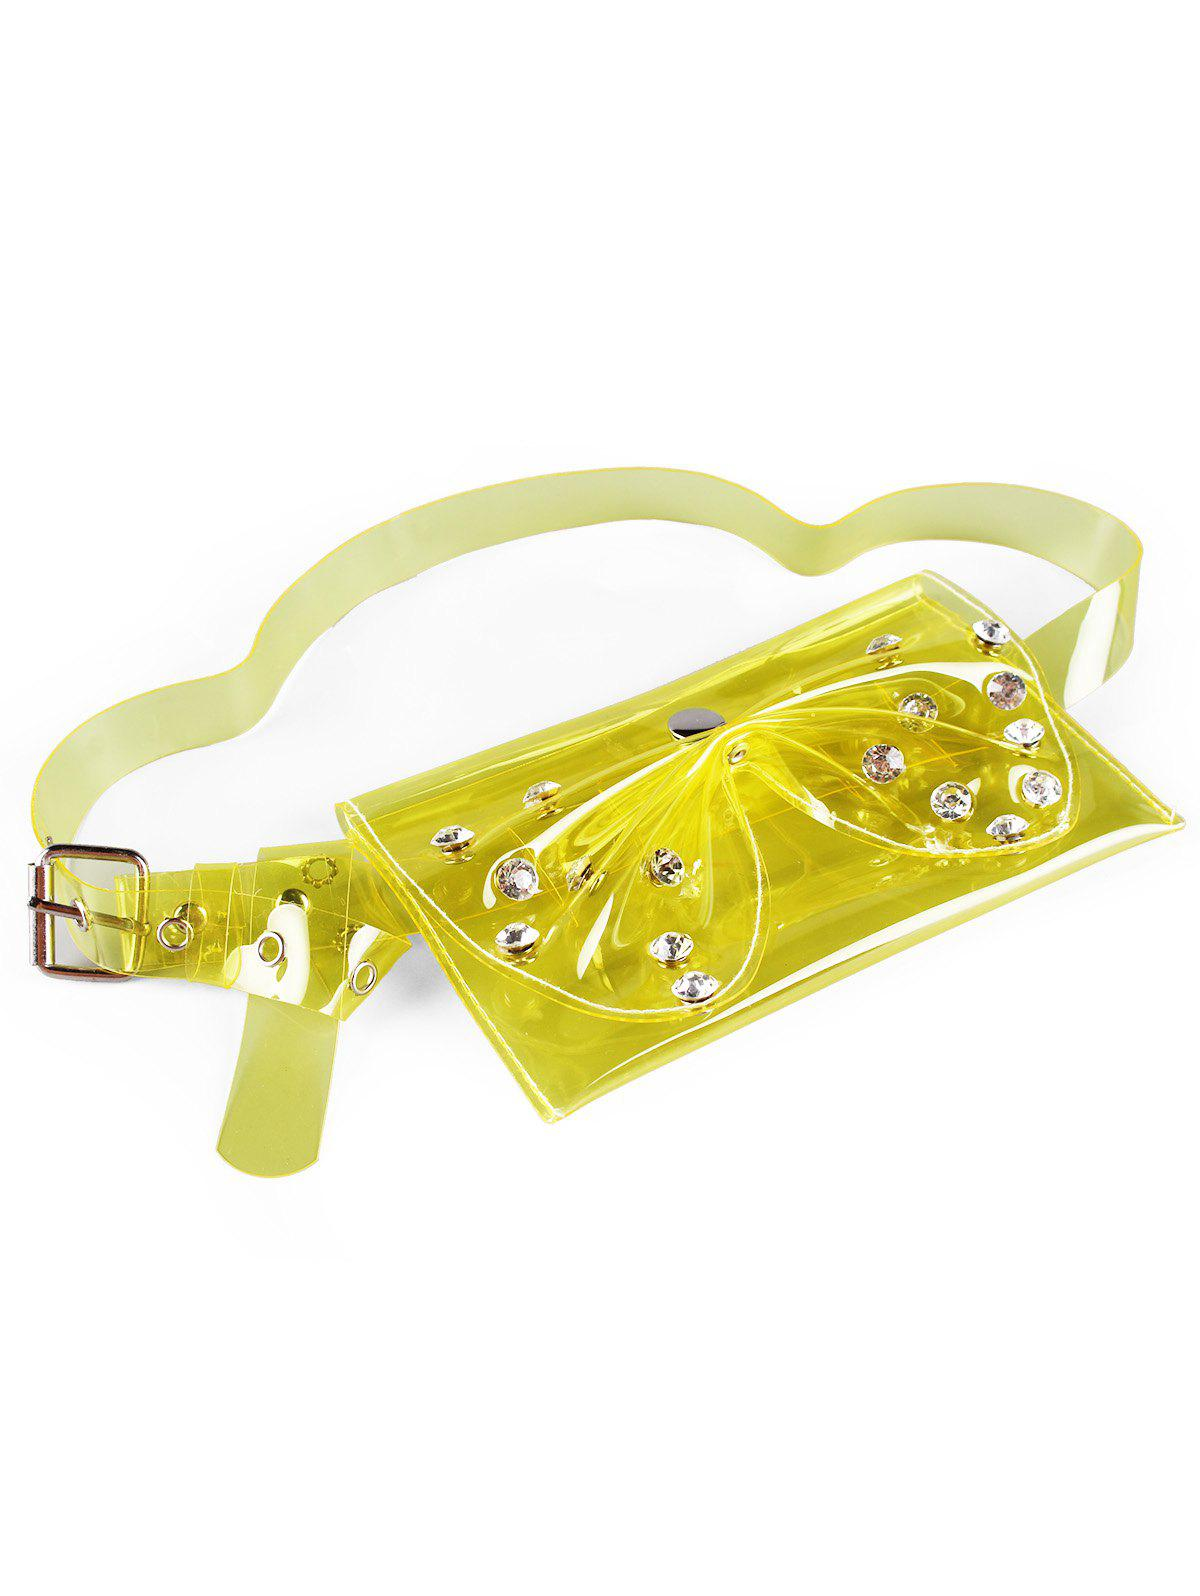 Stylish Rhinestone Bowknot Funny Bag Jelly Belt Bag - YELLOW